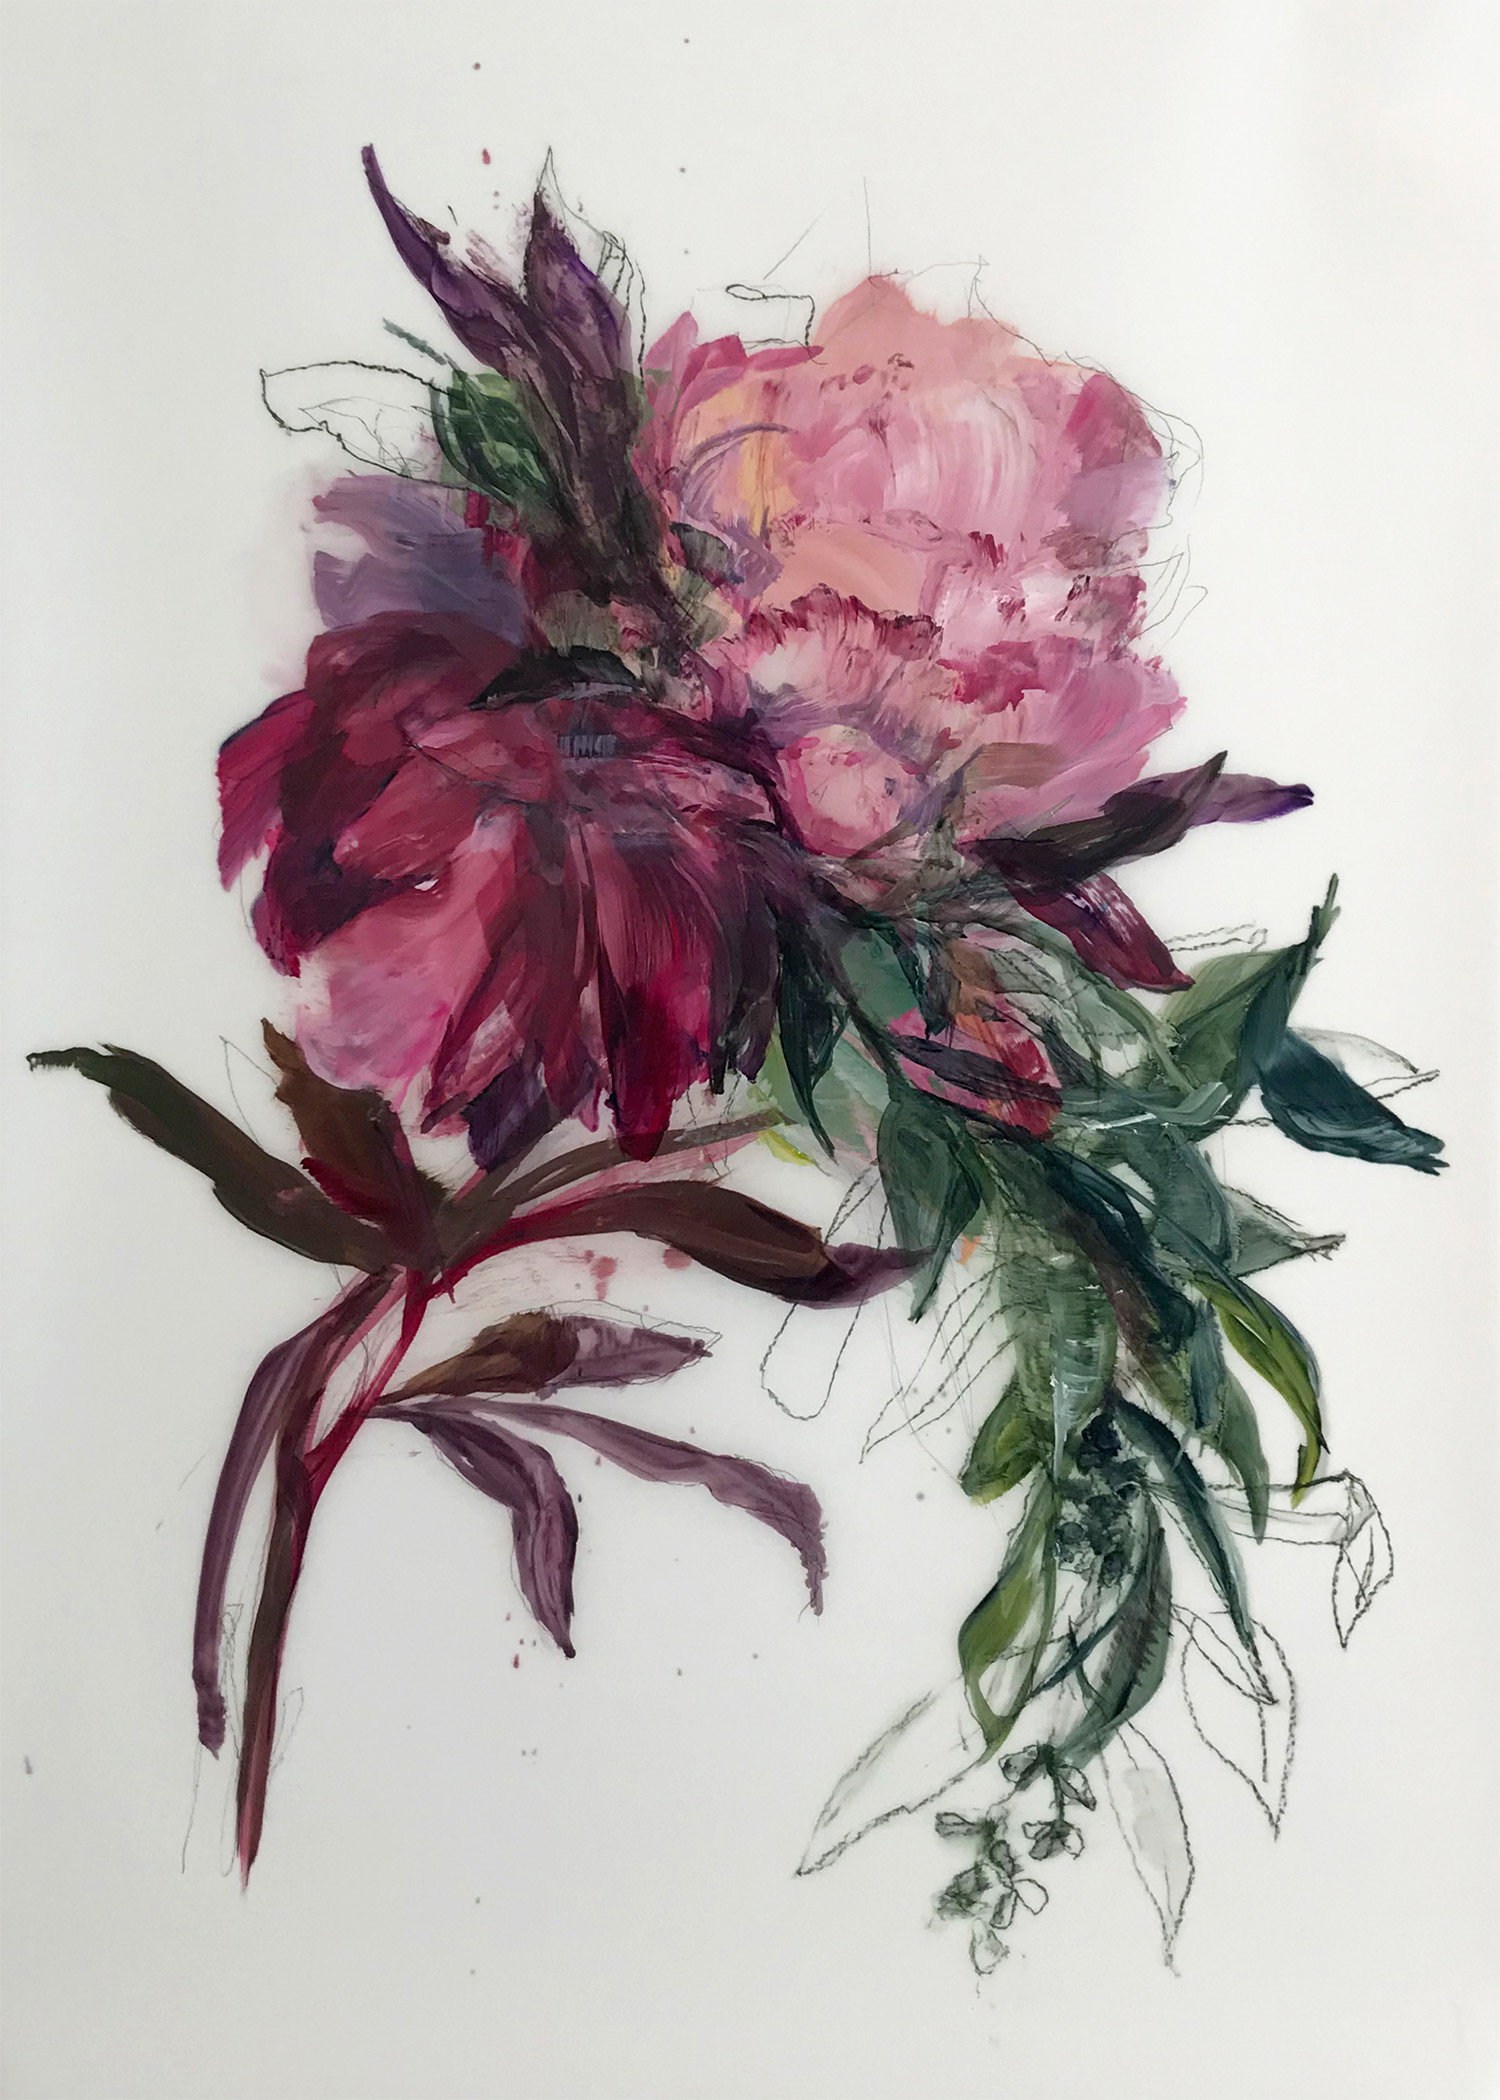 Madeleine Lamont, Pink Bouquet with Greenery 1, oil on mylar, 36 x 24 in.